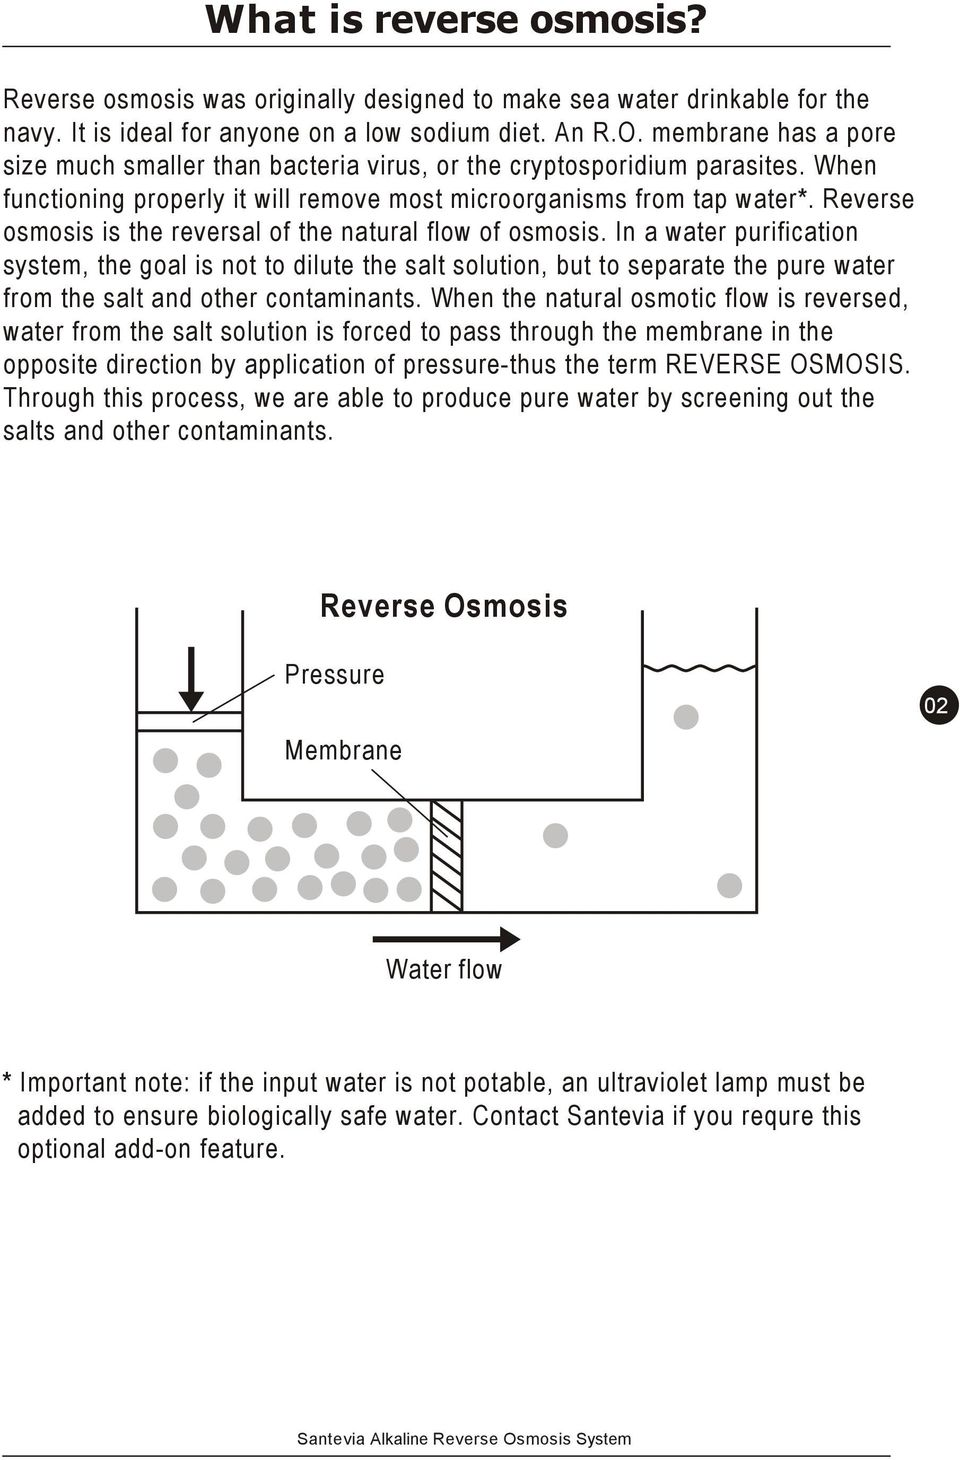 Users manual alkaline reverse osmosis system pdf reverse osmosis is the reversal of the natural flow of osmosis publicscrutiny Choice Image